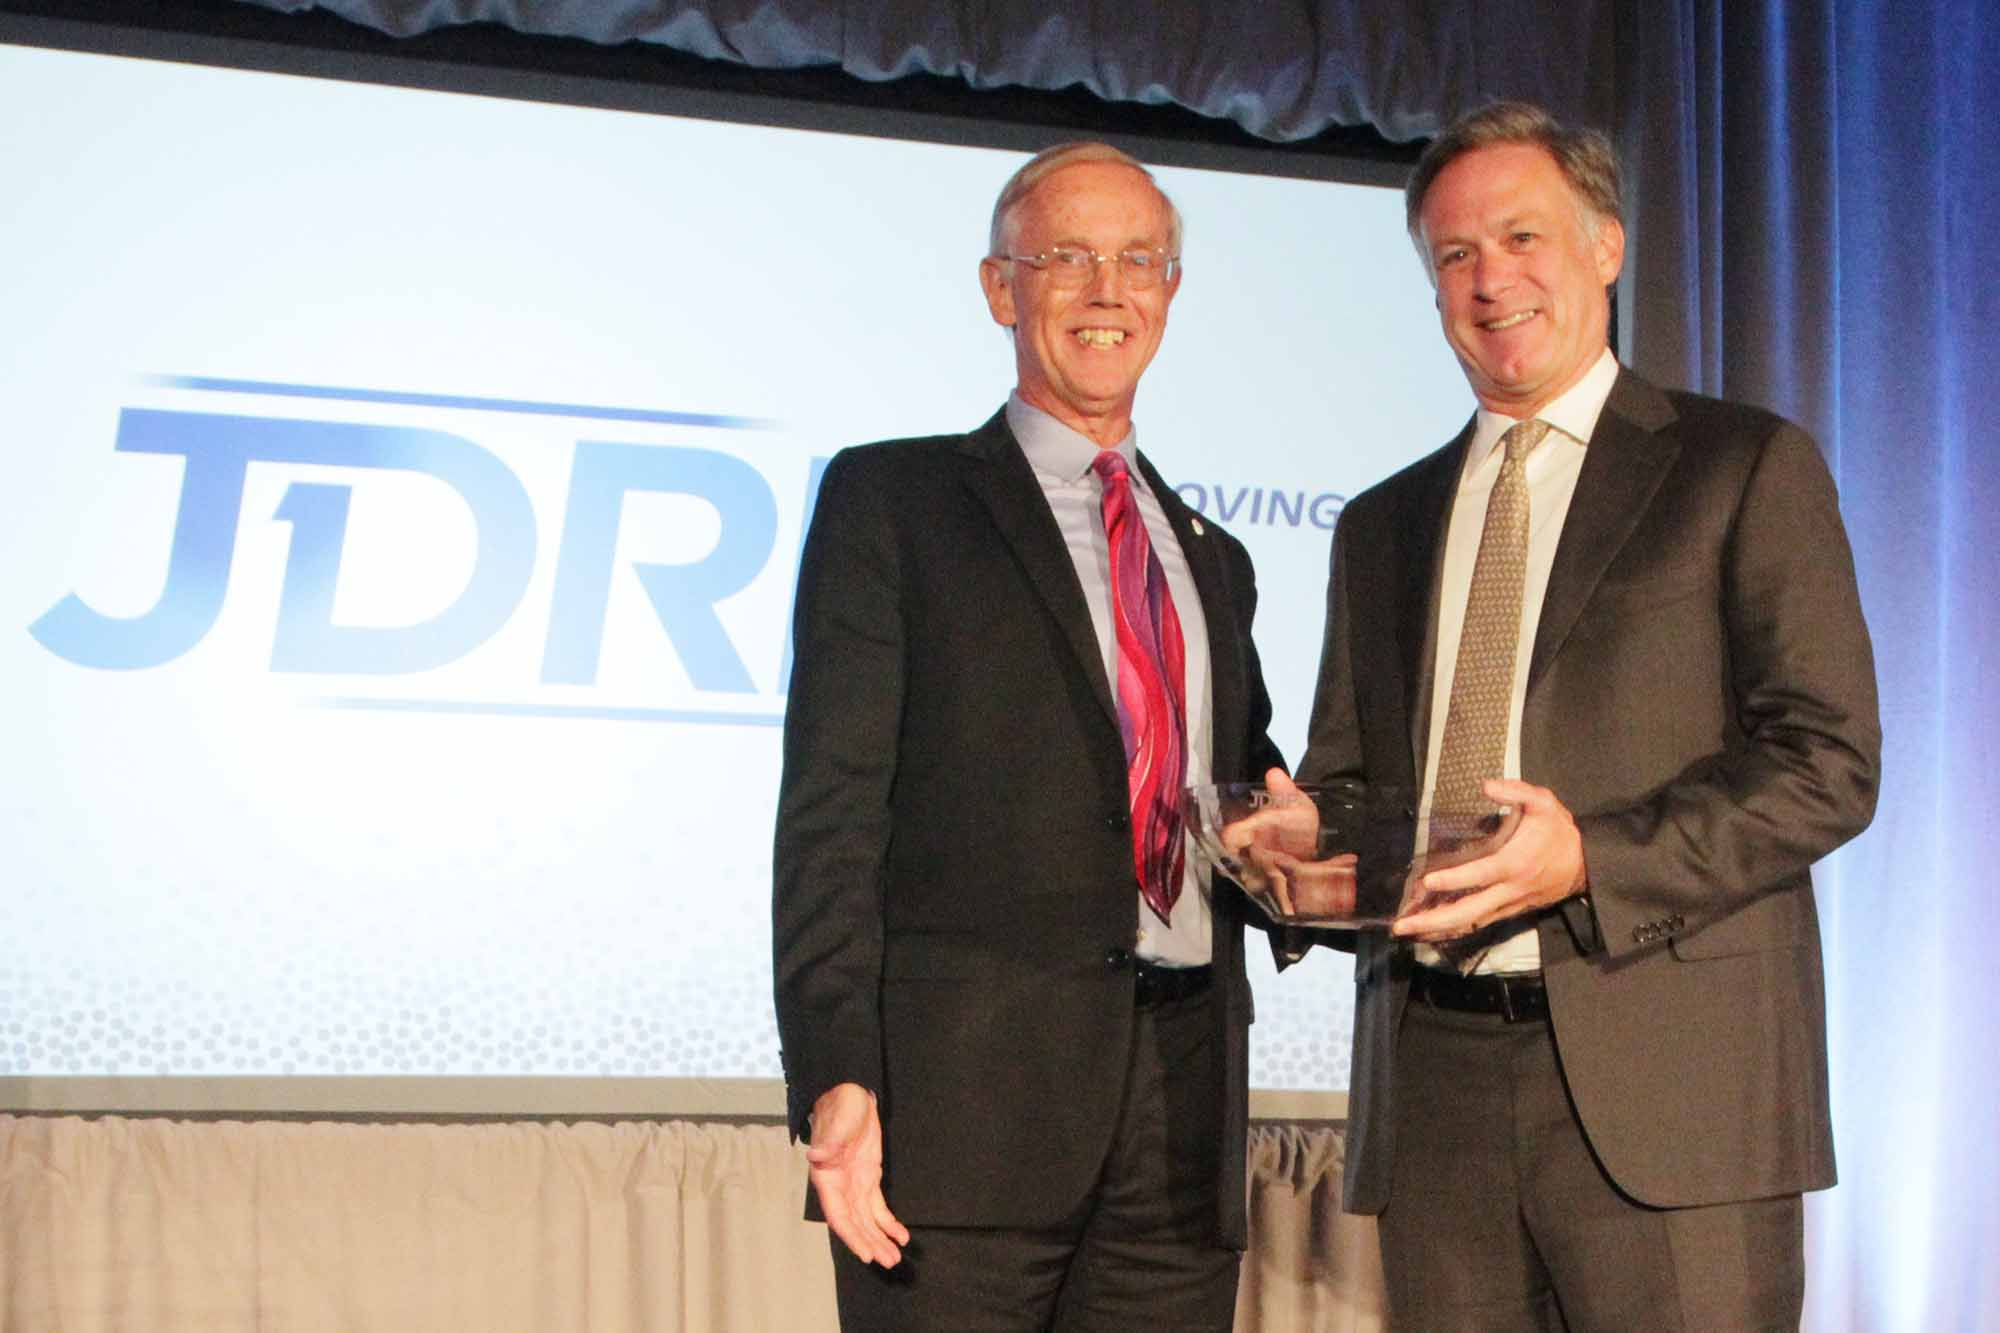 Sean Doherty Receives Leadership Award from JDRF